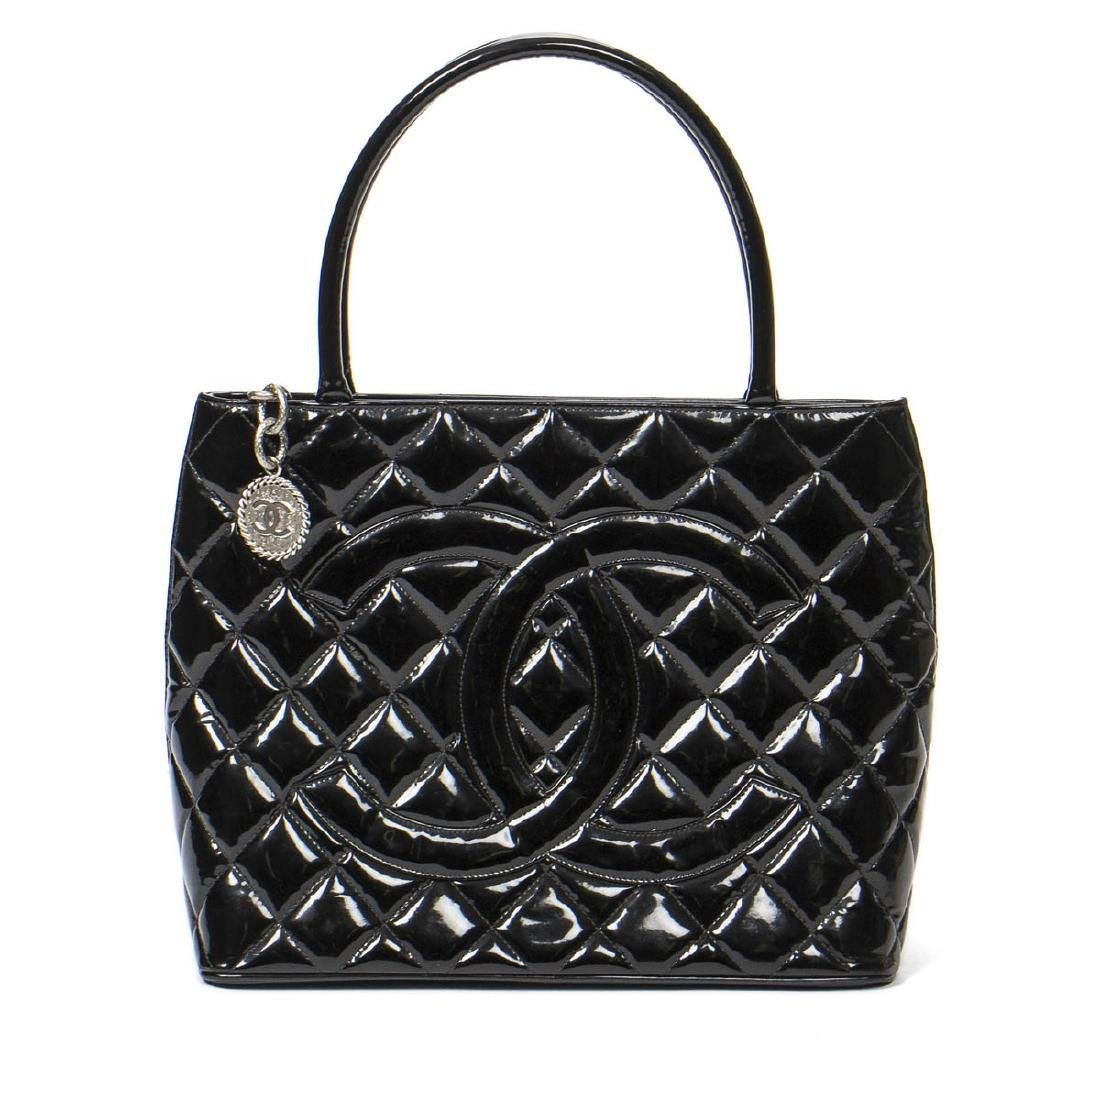 Chanel Medallion in Black Patent Quilted Leather